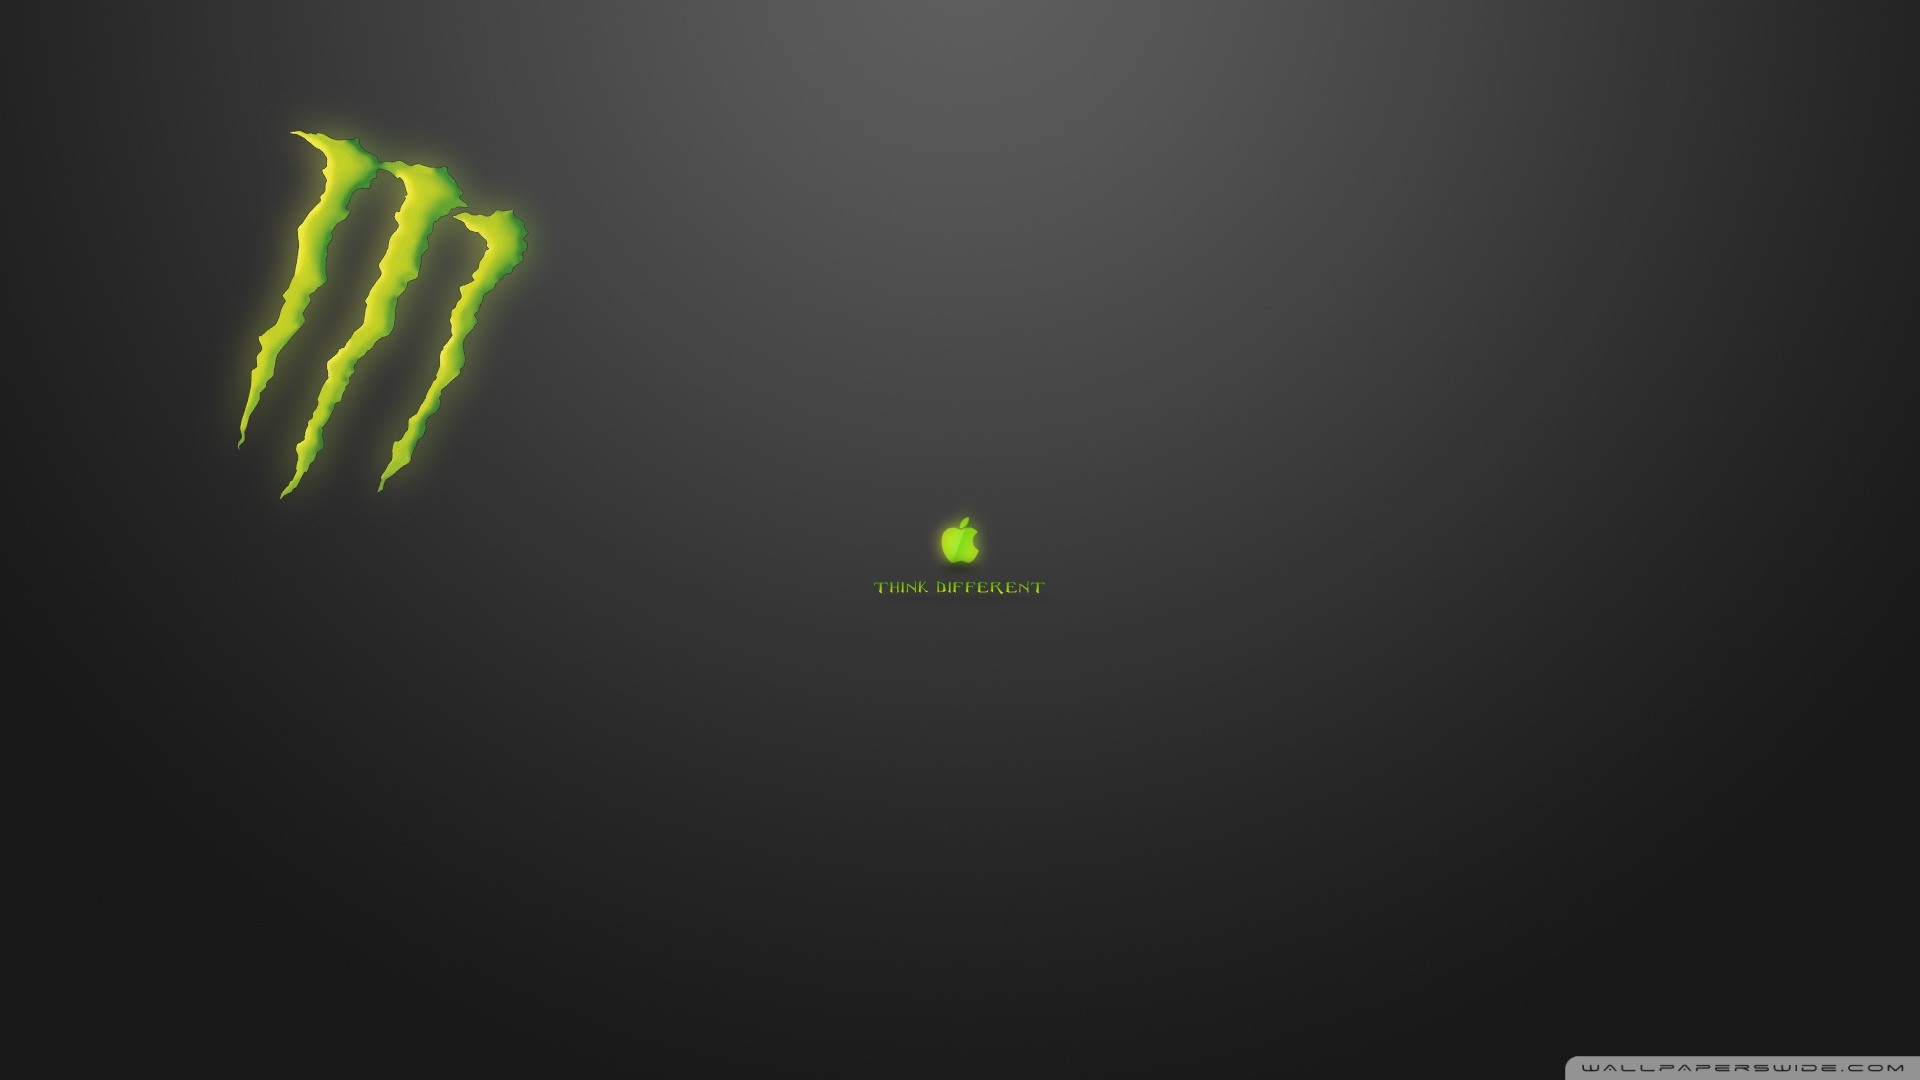 Think Different Monster Wallpaper 1920×1080